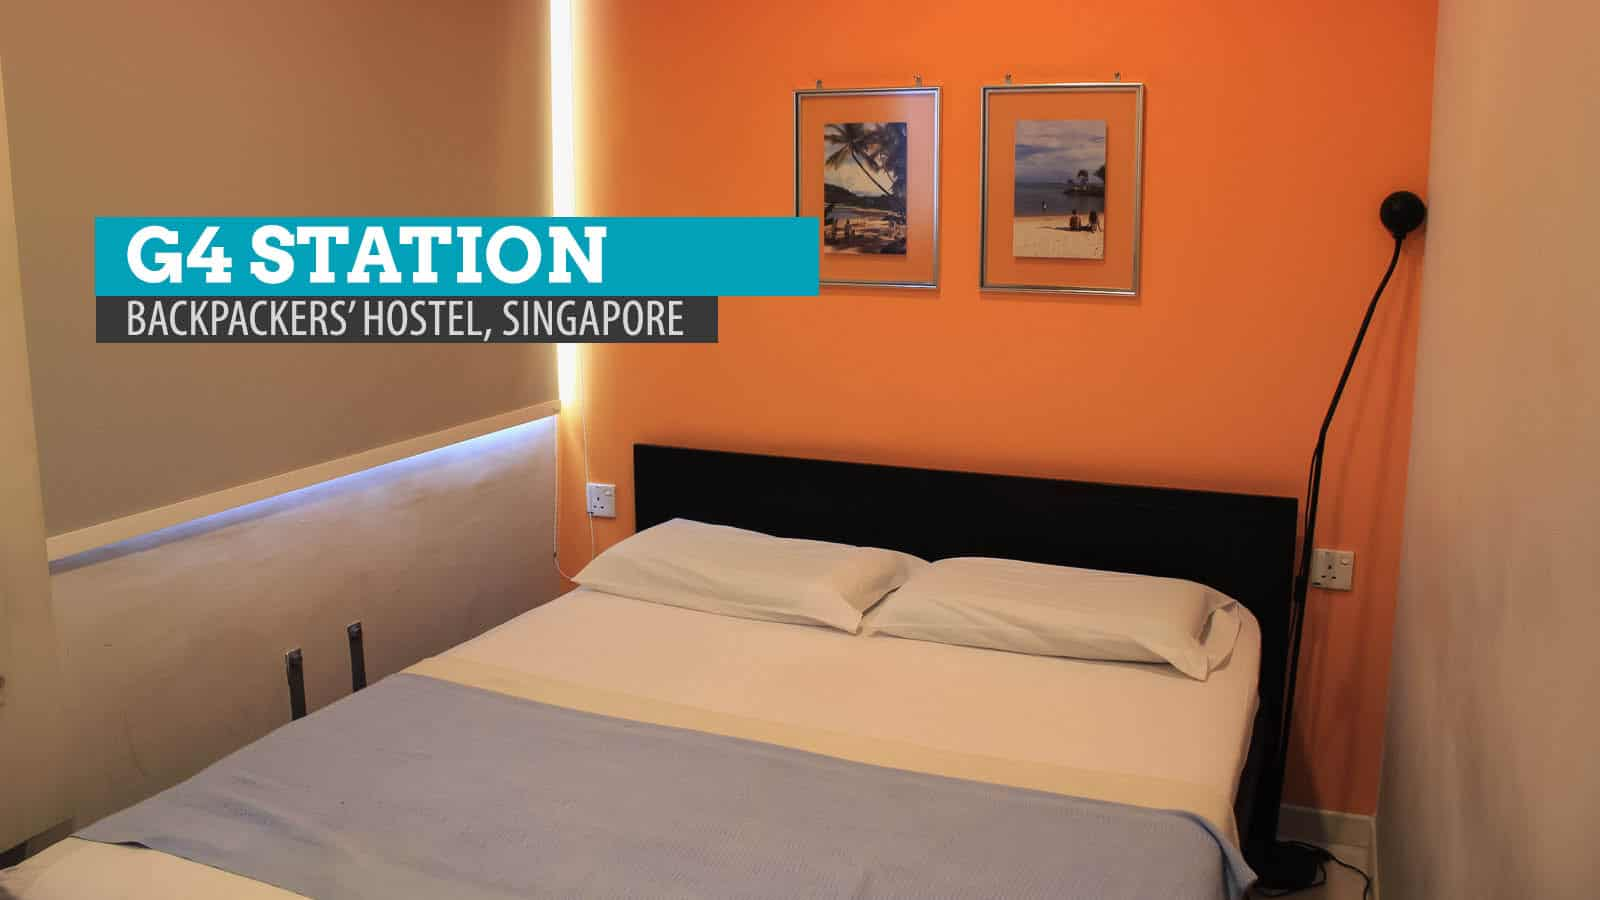 G4 Station Backpackers' Hostel, Singapore